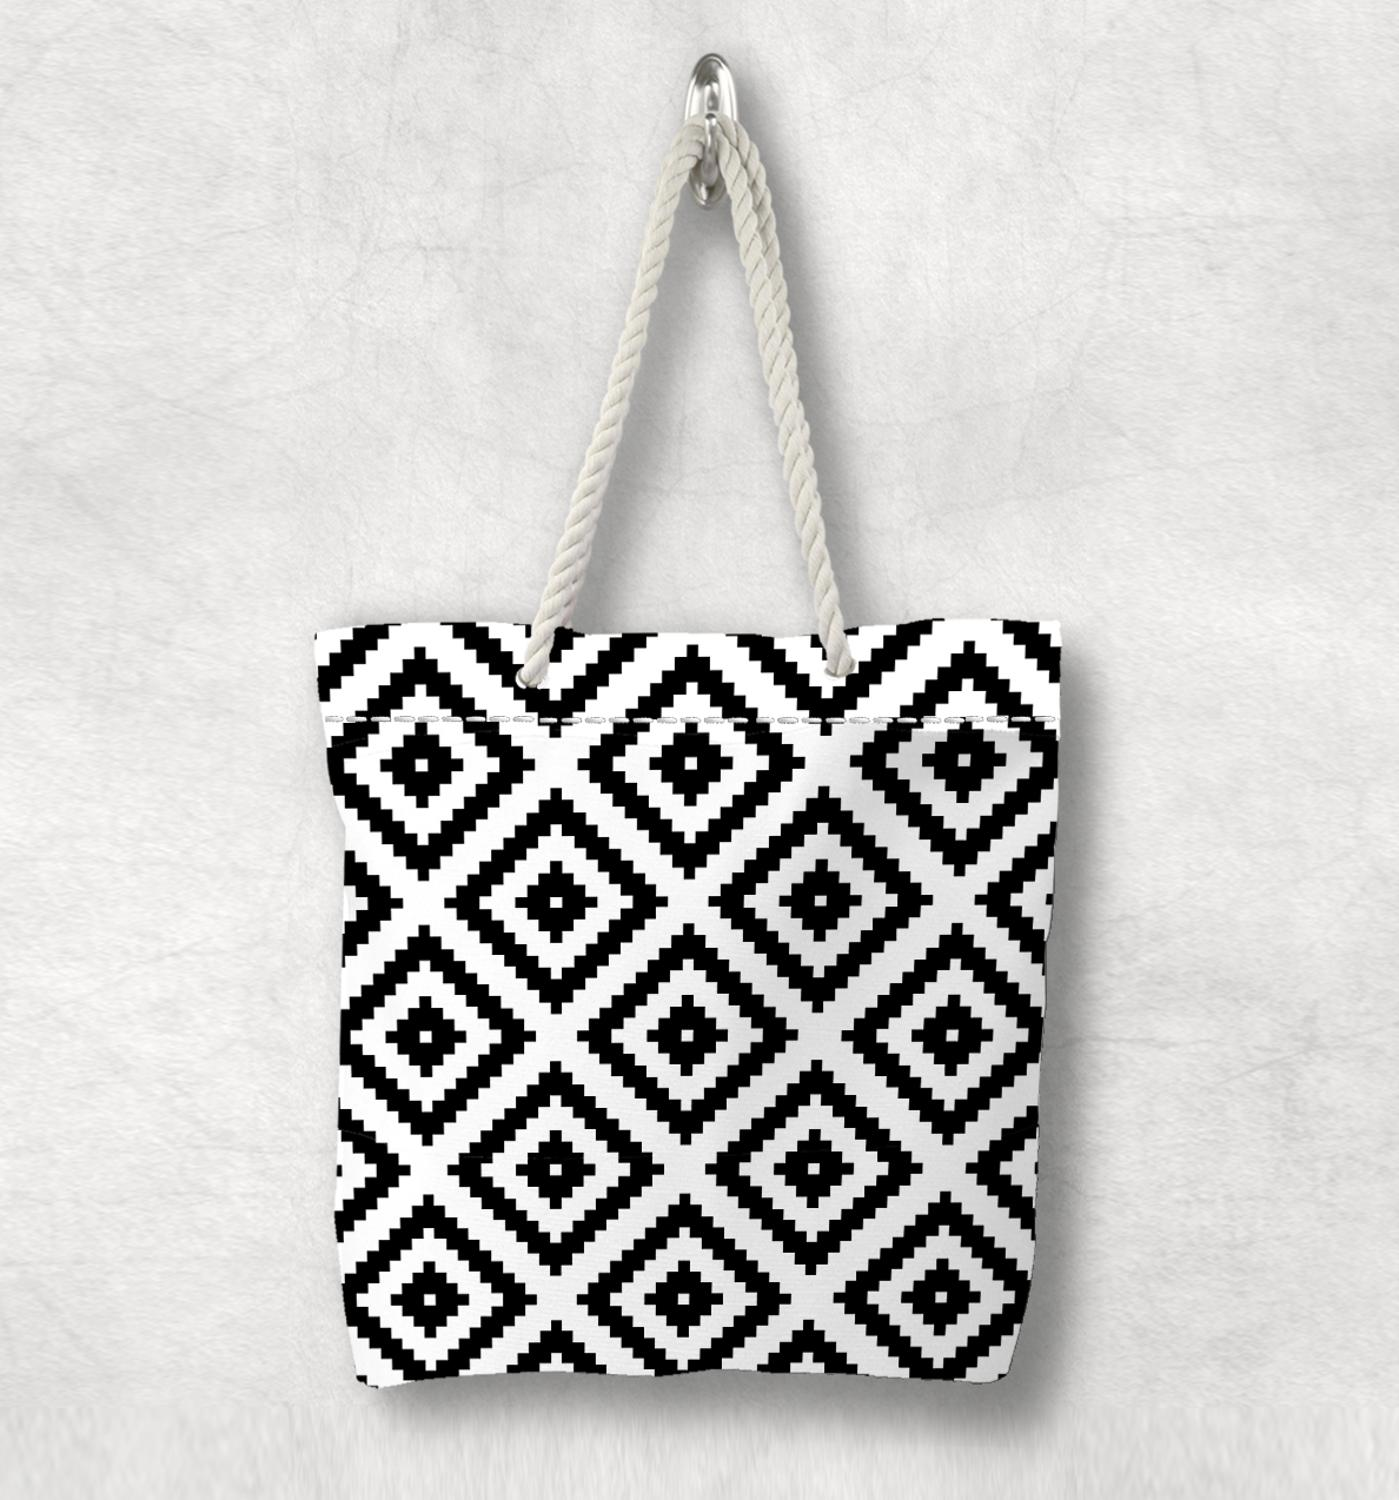 Else Black White Geometric Tiles New Fashion White Rope Handle Canvas Bag Cotton Canvas Zippered Tote Bag Shoulder Bag